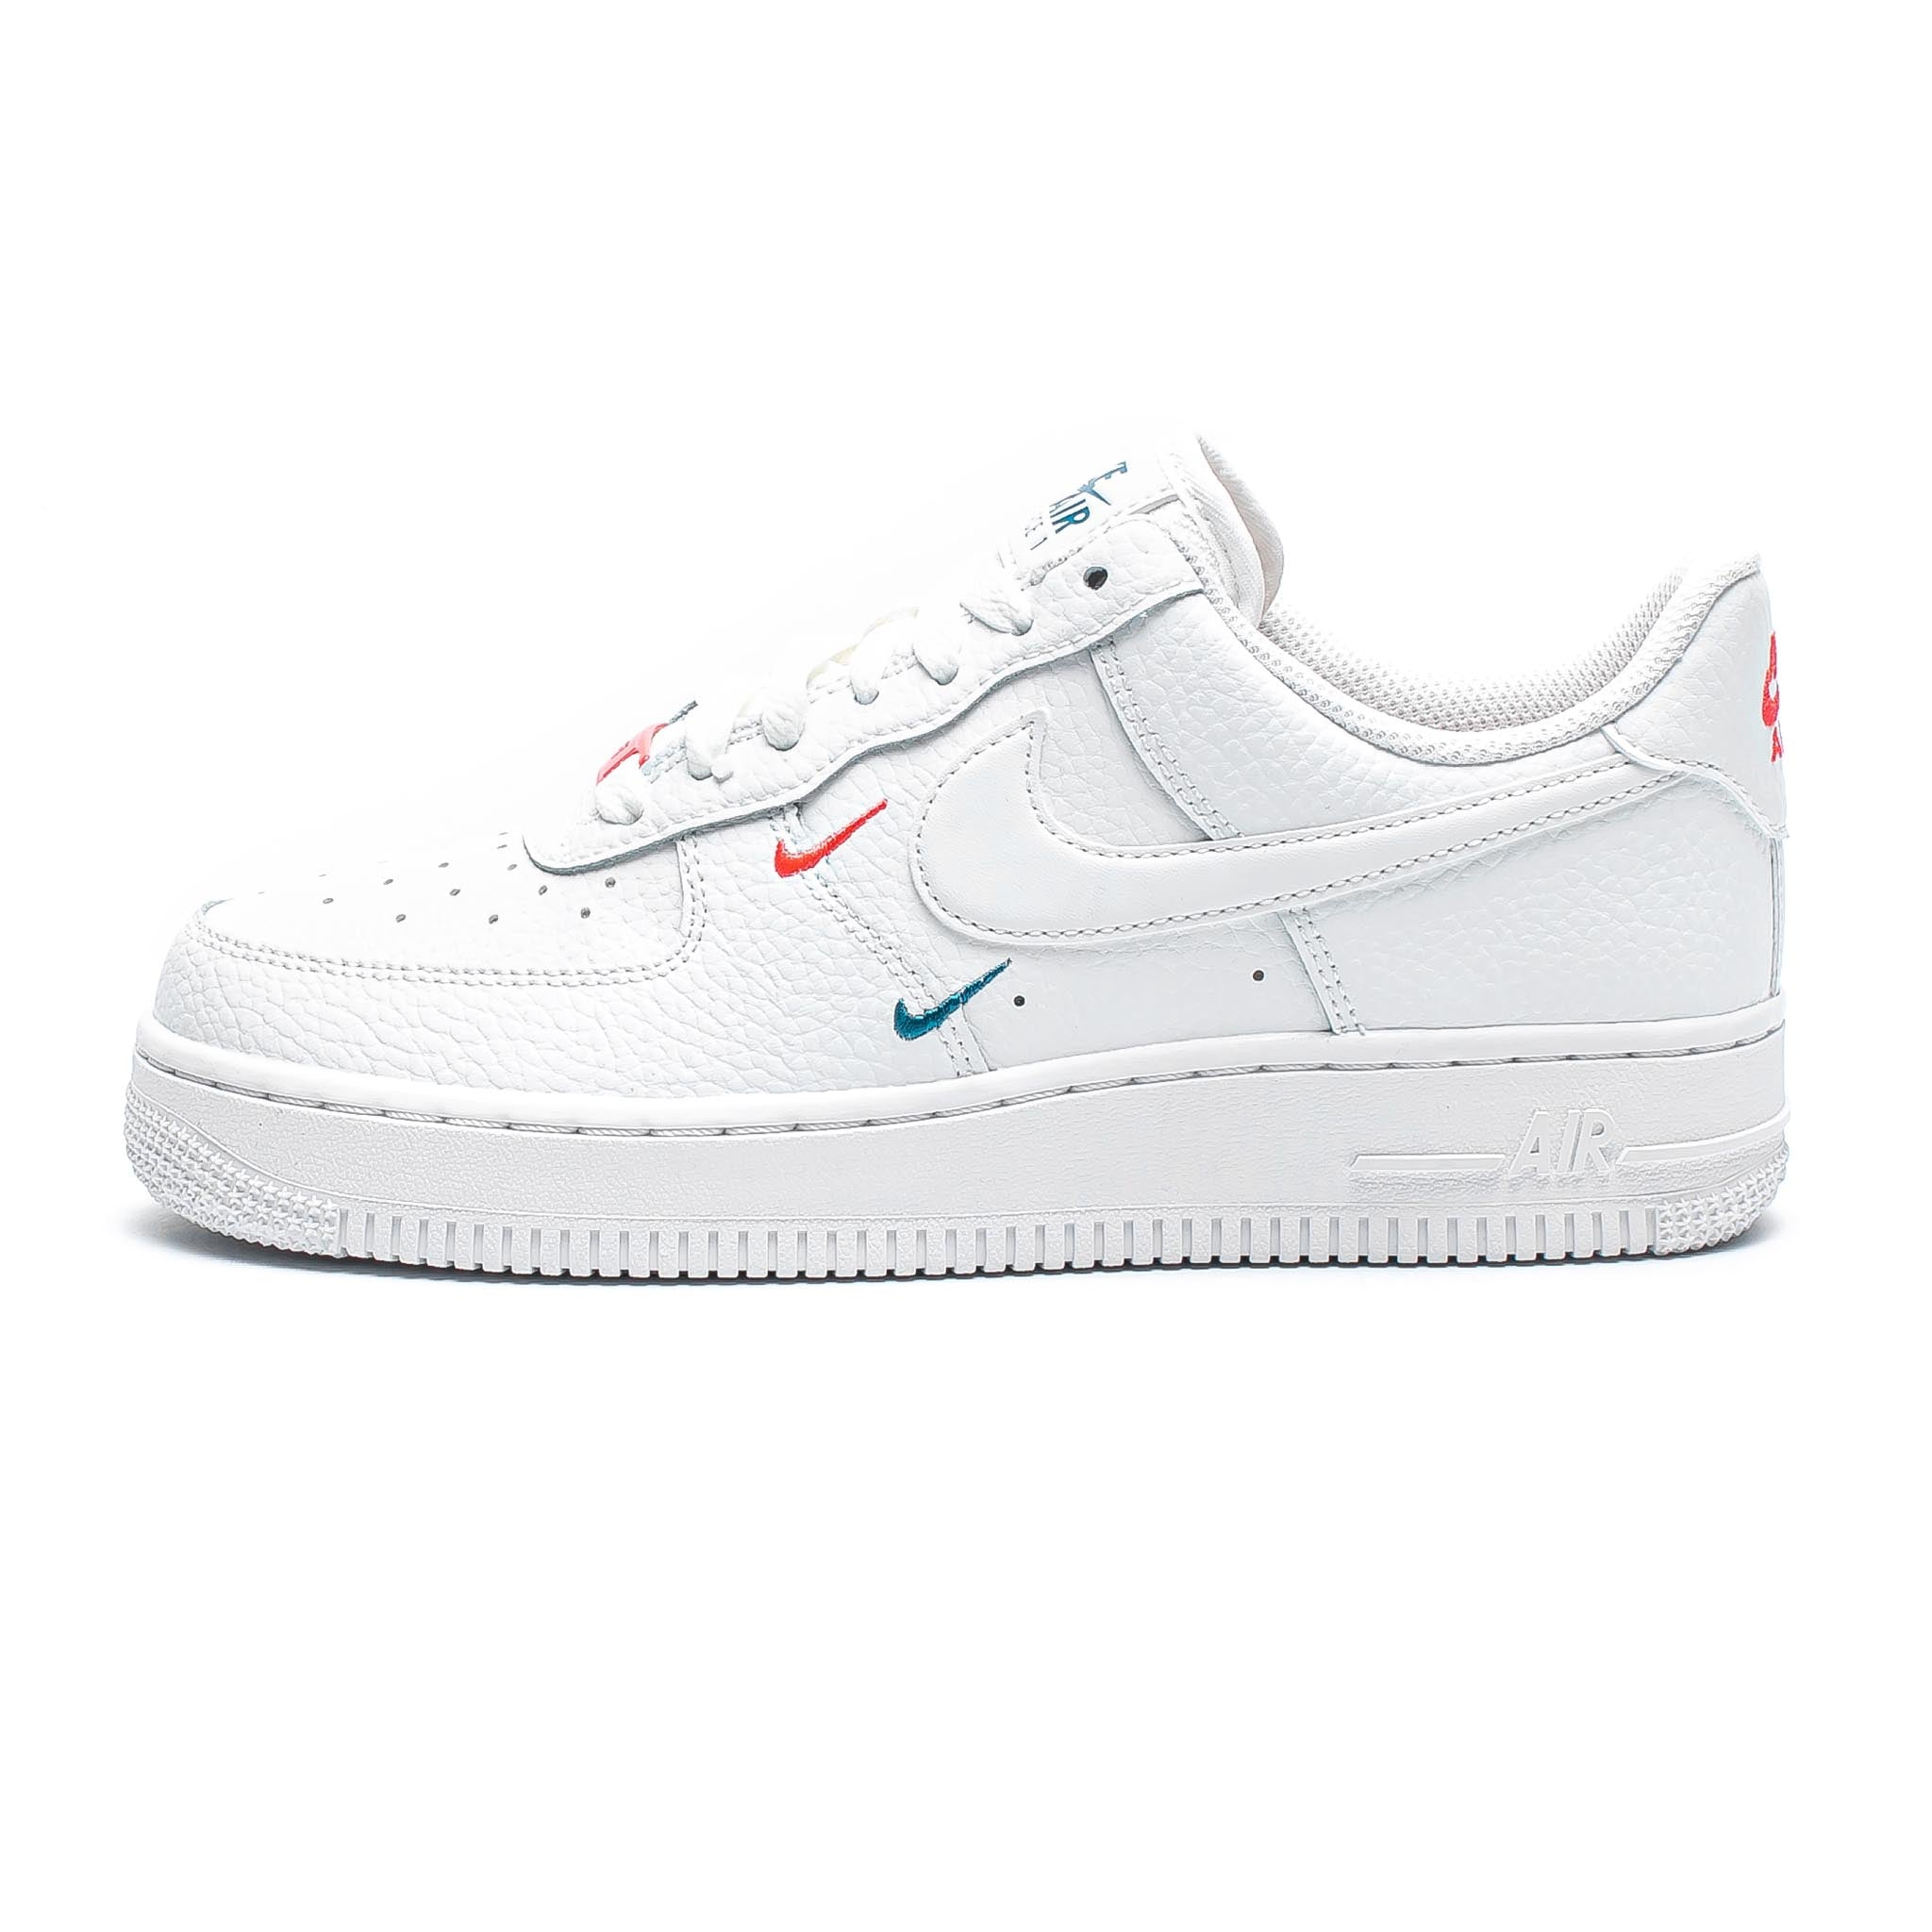 Nike Air Force 1 '07 'Mini Swooshes' Summit White